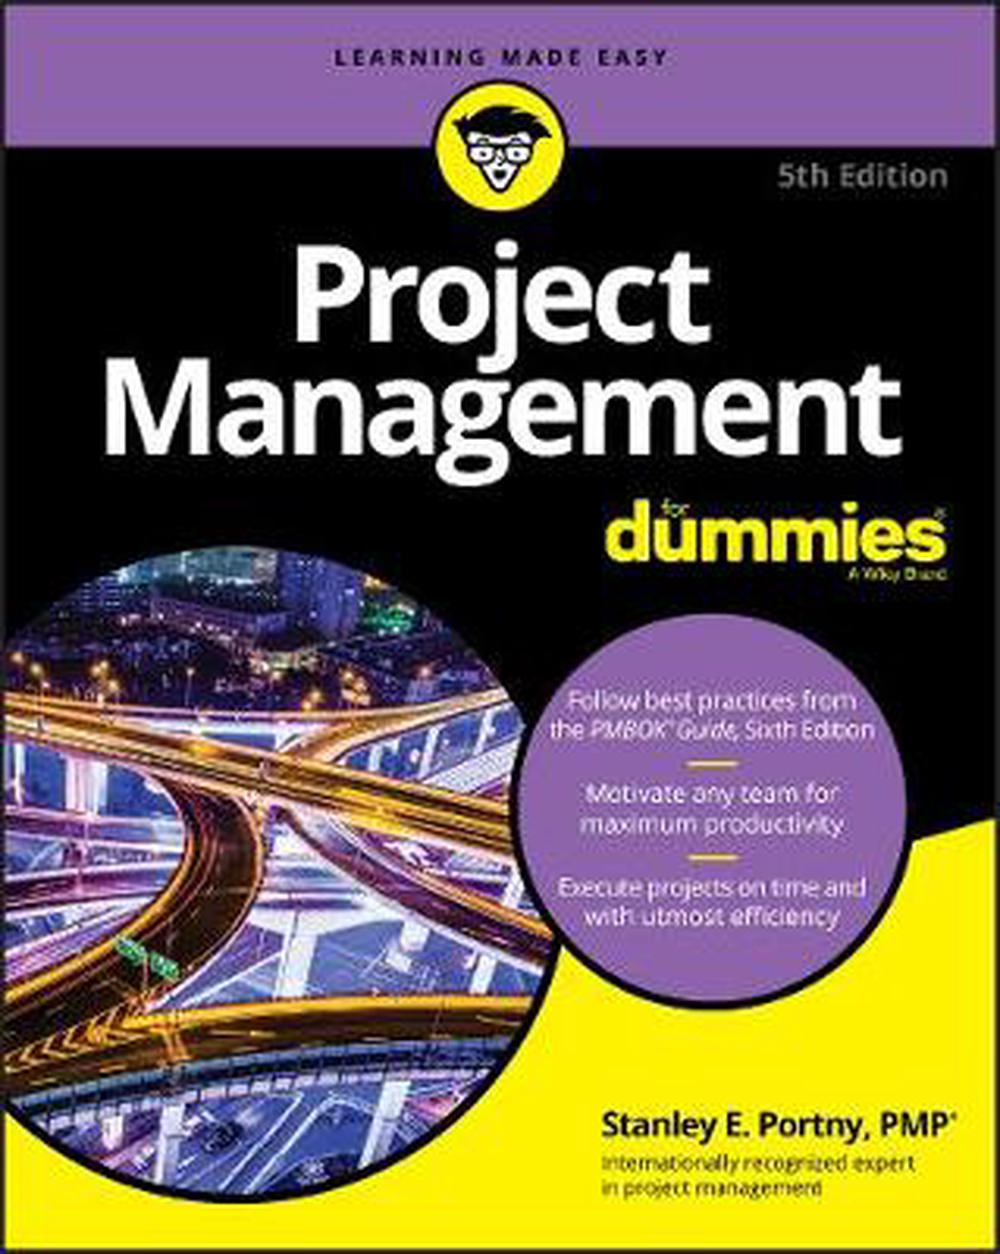 project management for dummies 5th edition pdf free